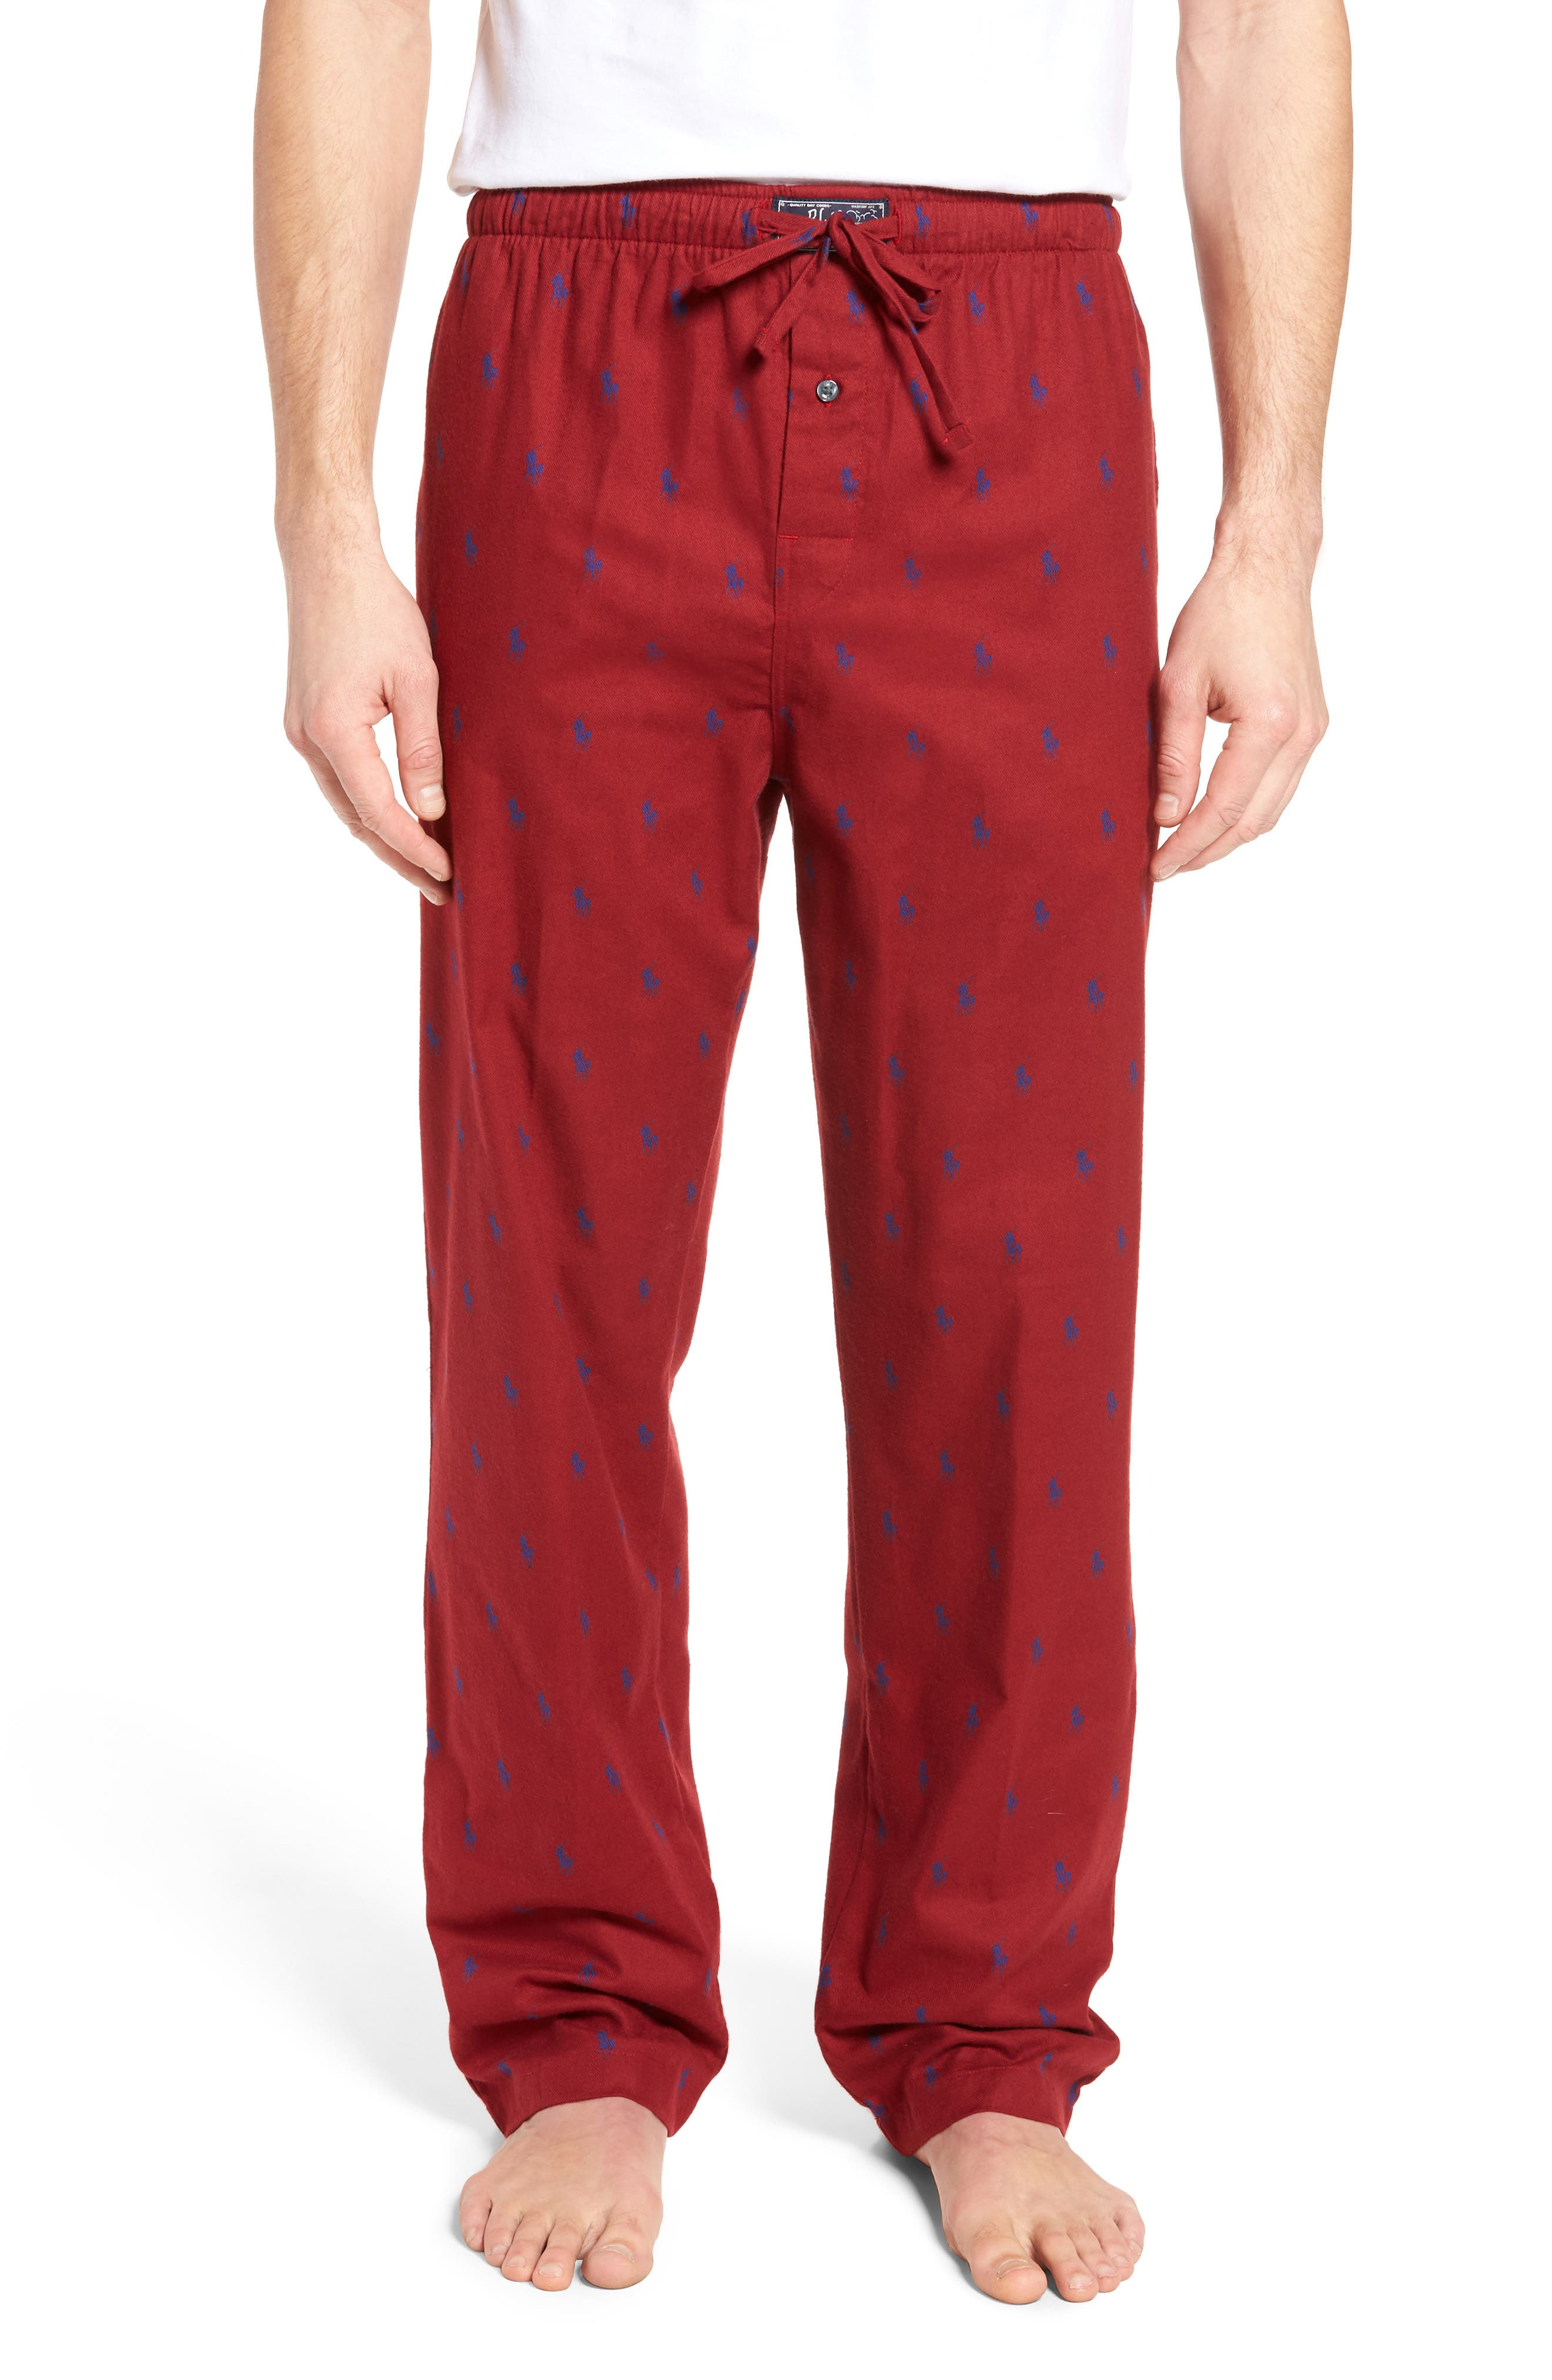 Brushed Flannel Pajama Pants,                         Main,                         color, Avenue Red/ Royal